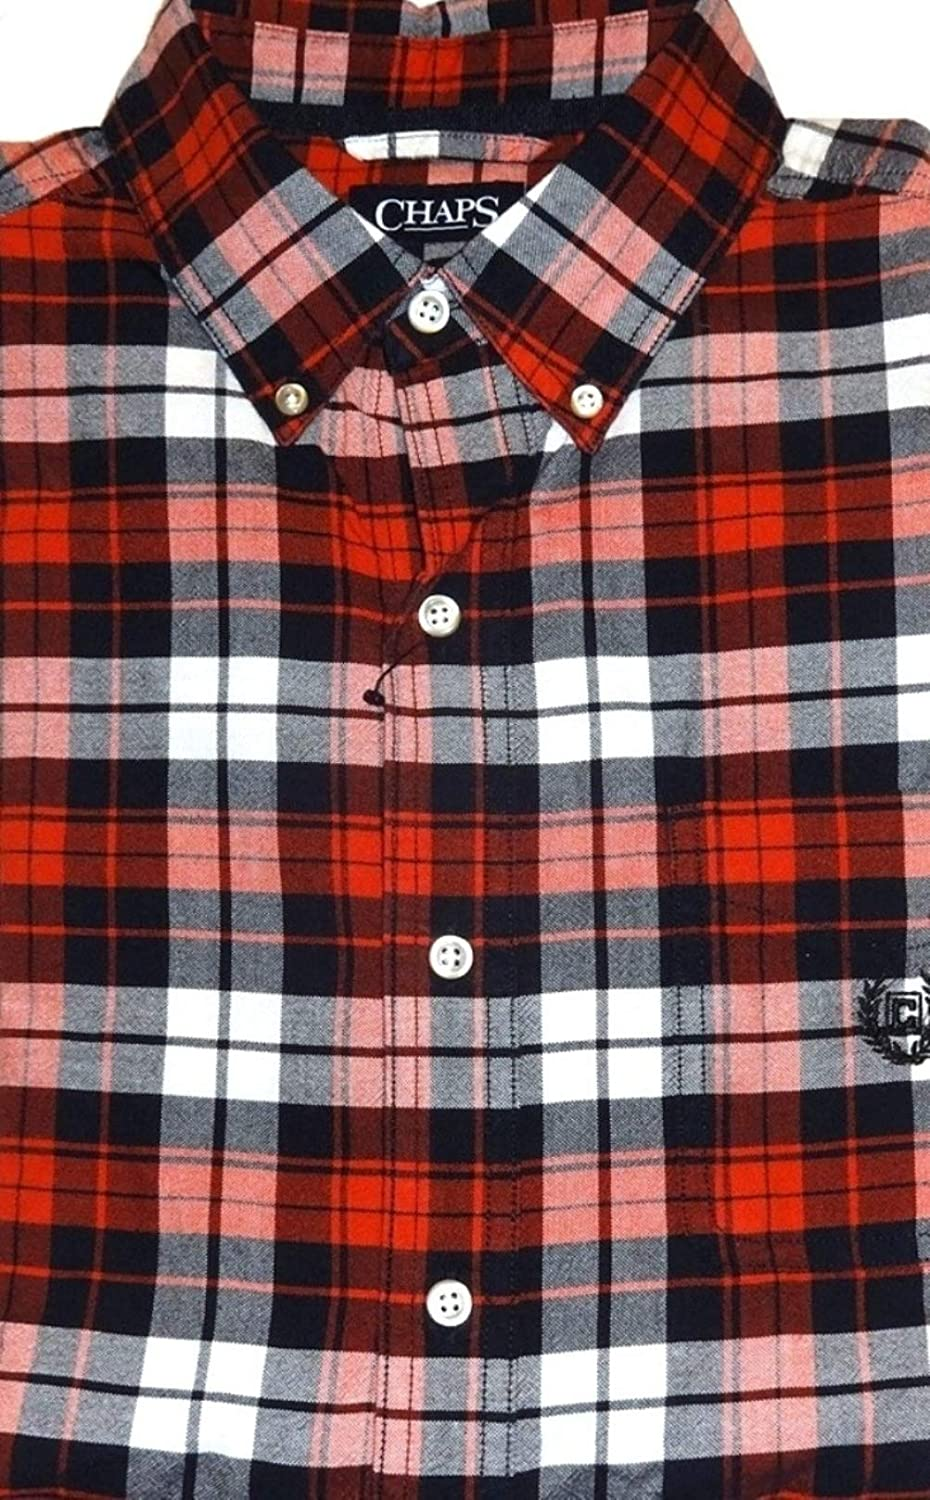 Chaps Mens Classic Fit Button Down Oxford Shirt Red Brick